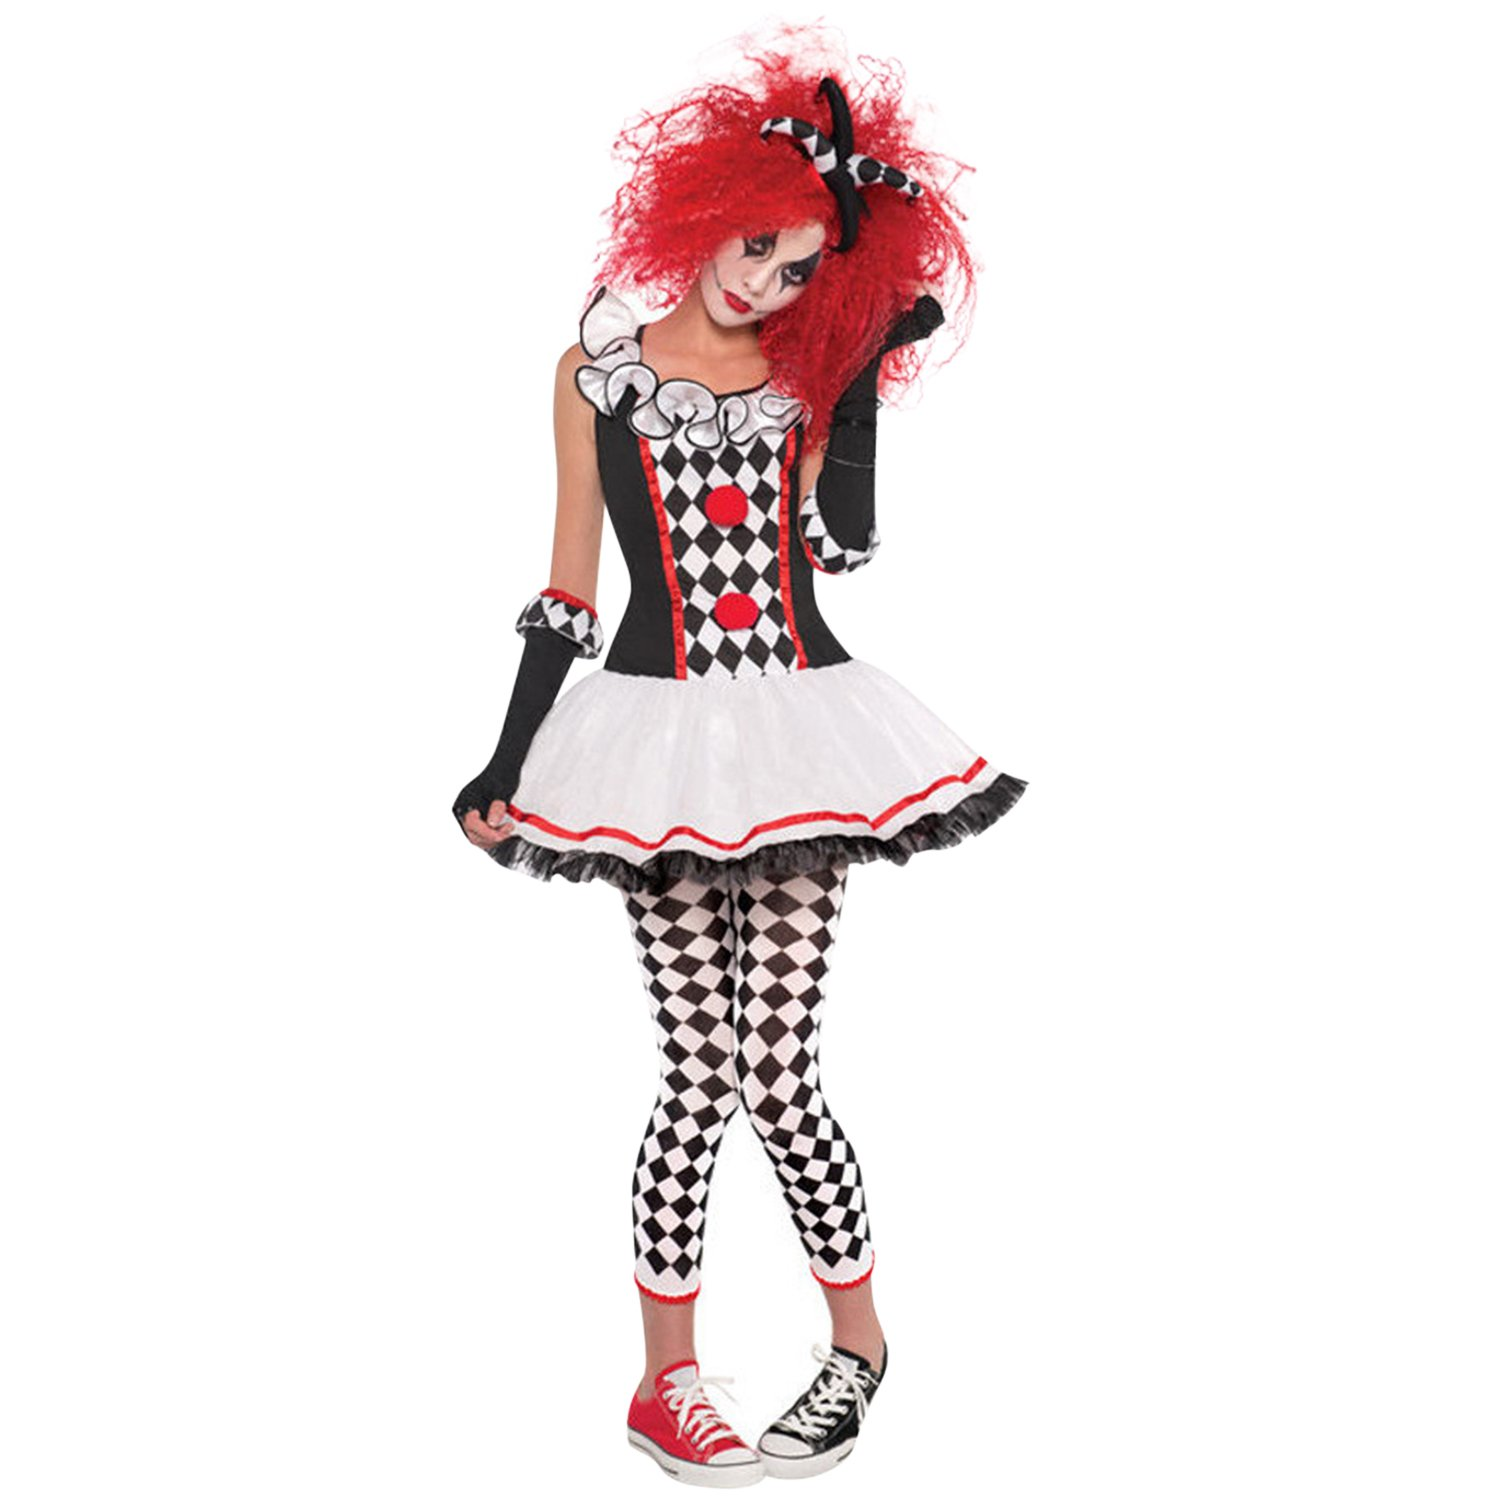 Lisli Women's Funny Clown Costume Cosplay Costumes Halloween Carnival by Lisli